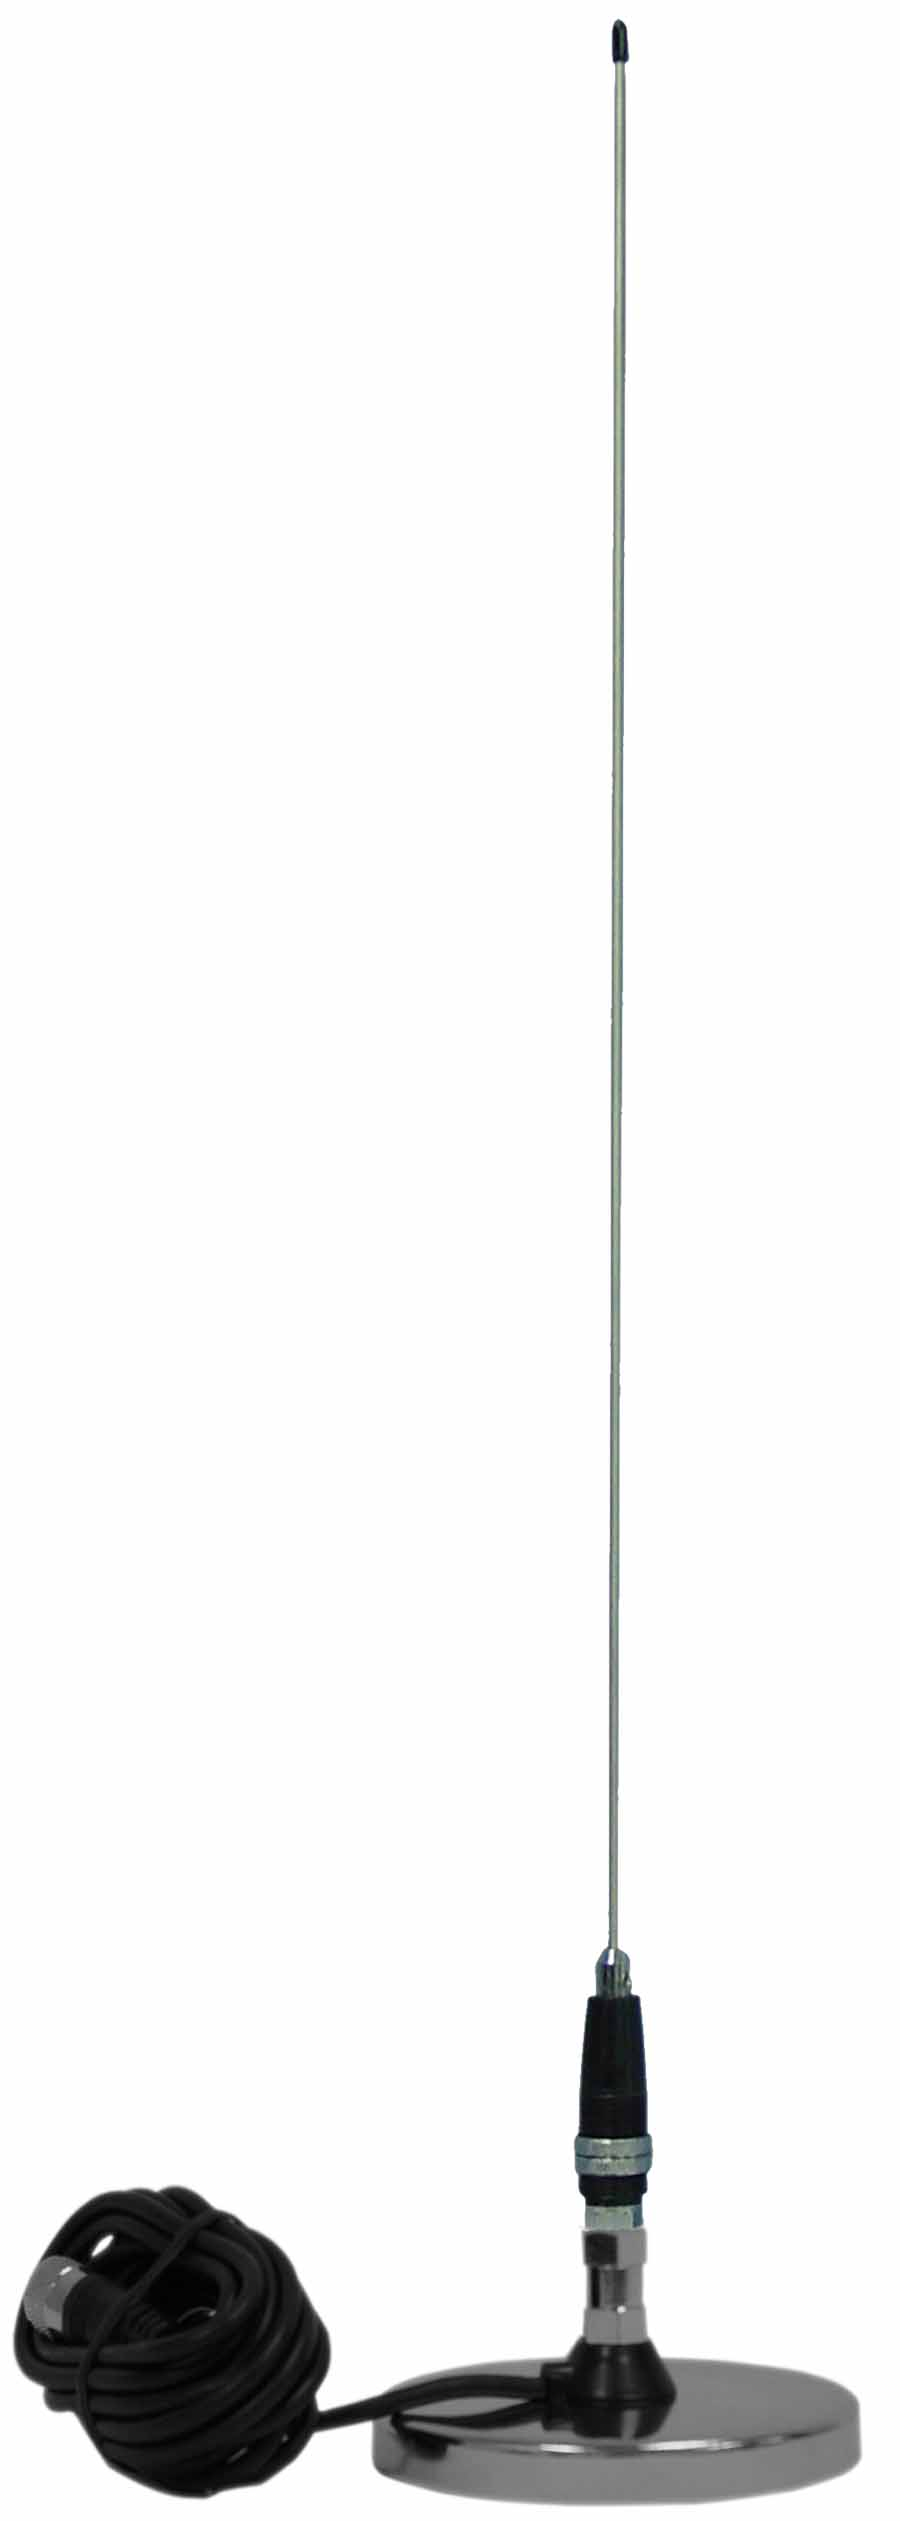 "JBC112-3600 36"" Dial-A-Match Antenna"